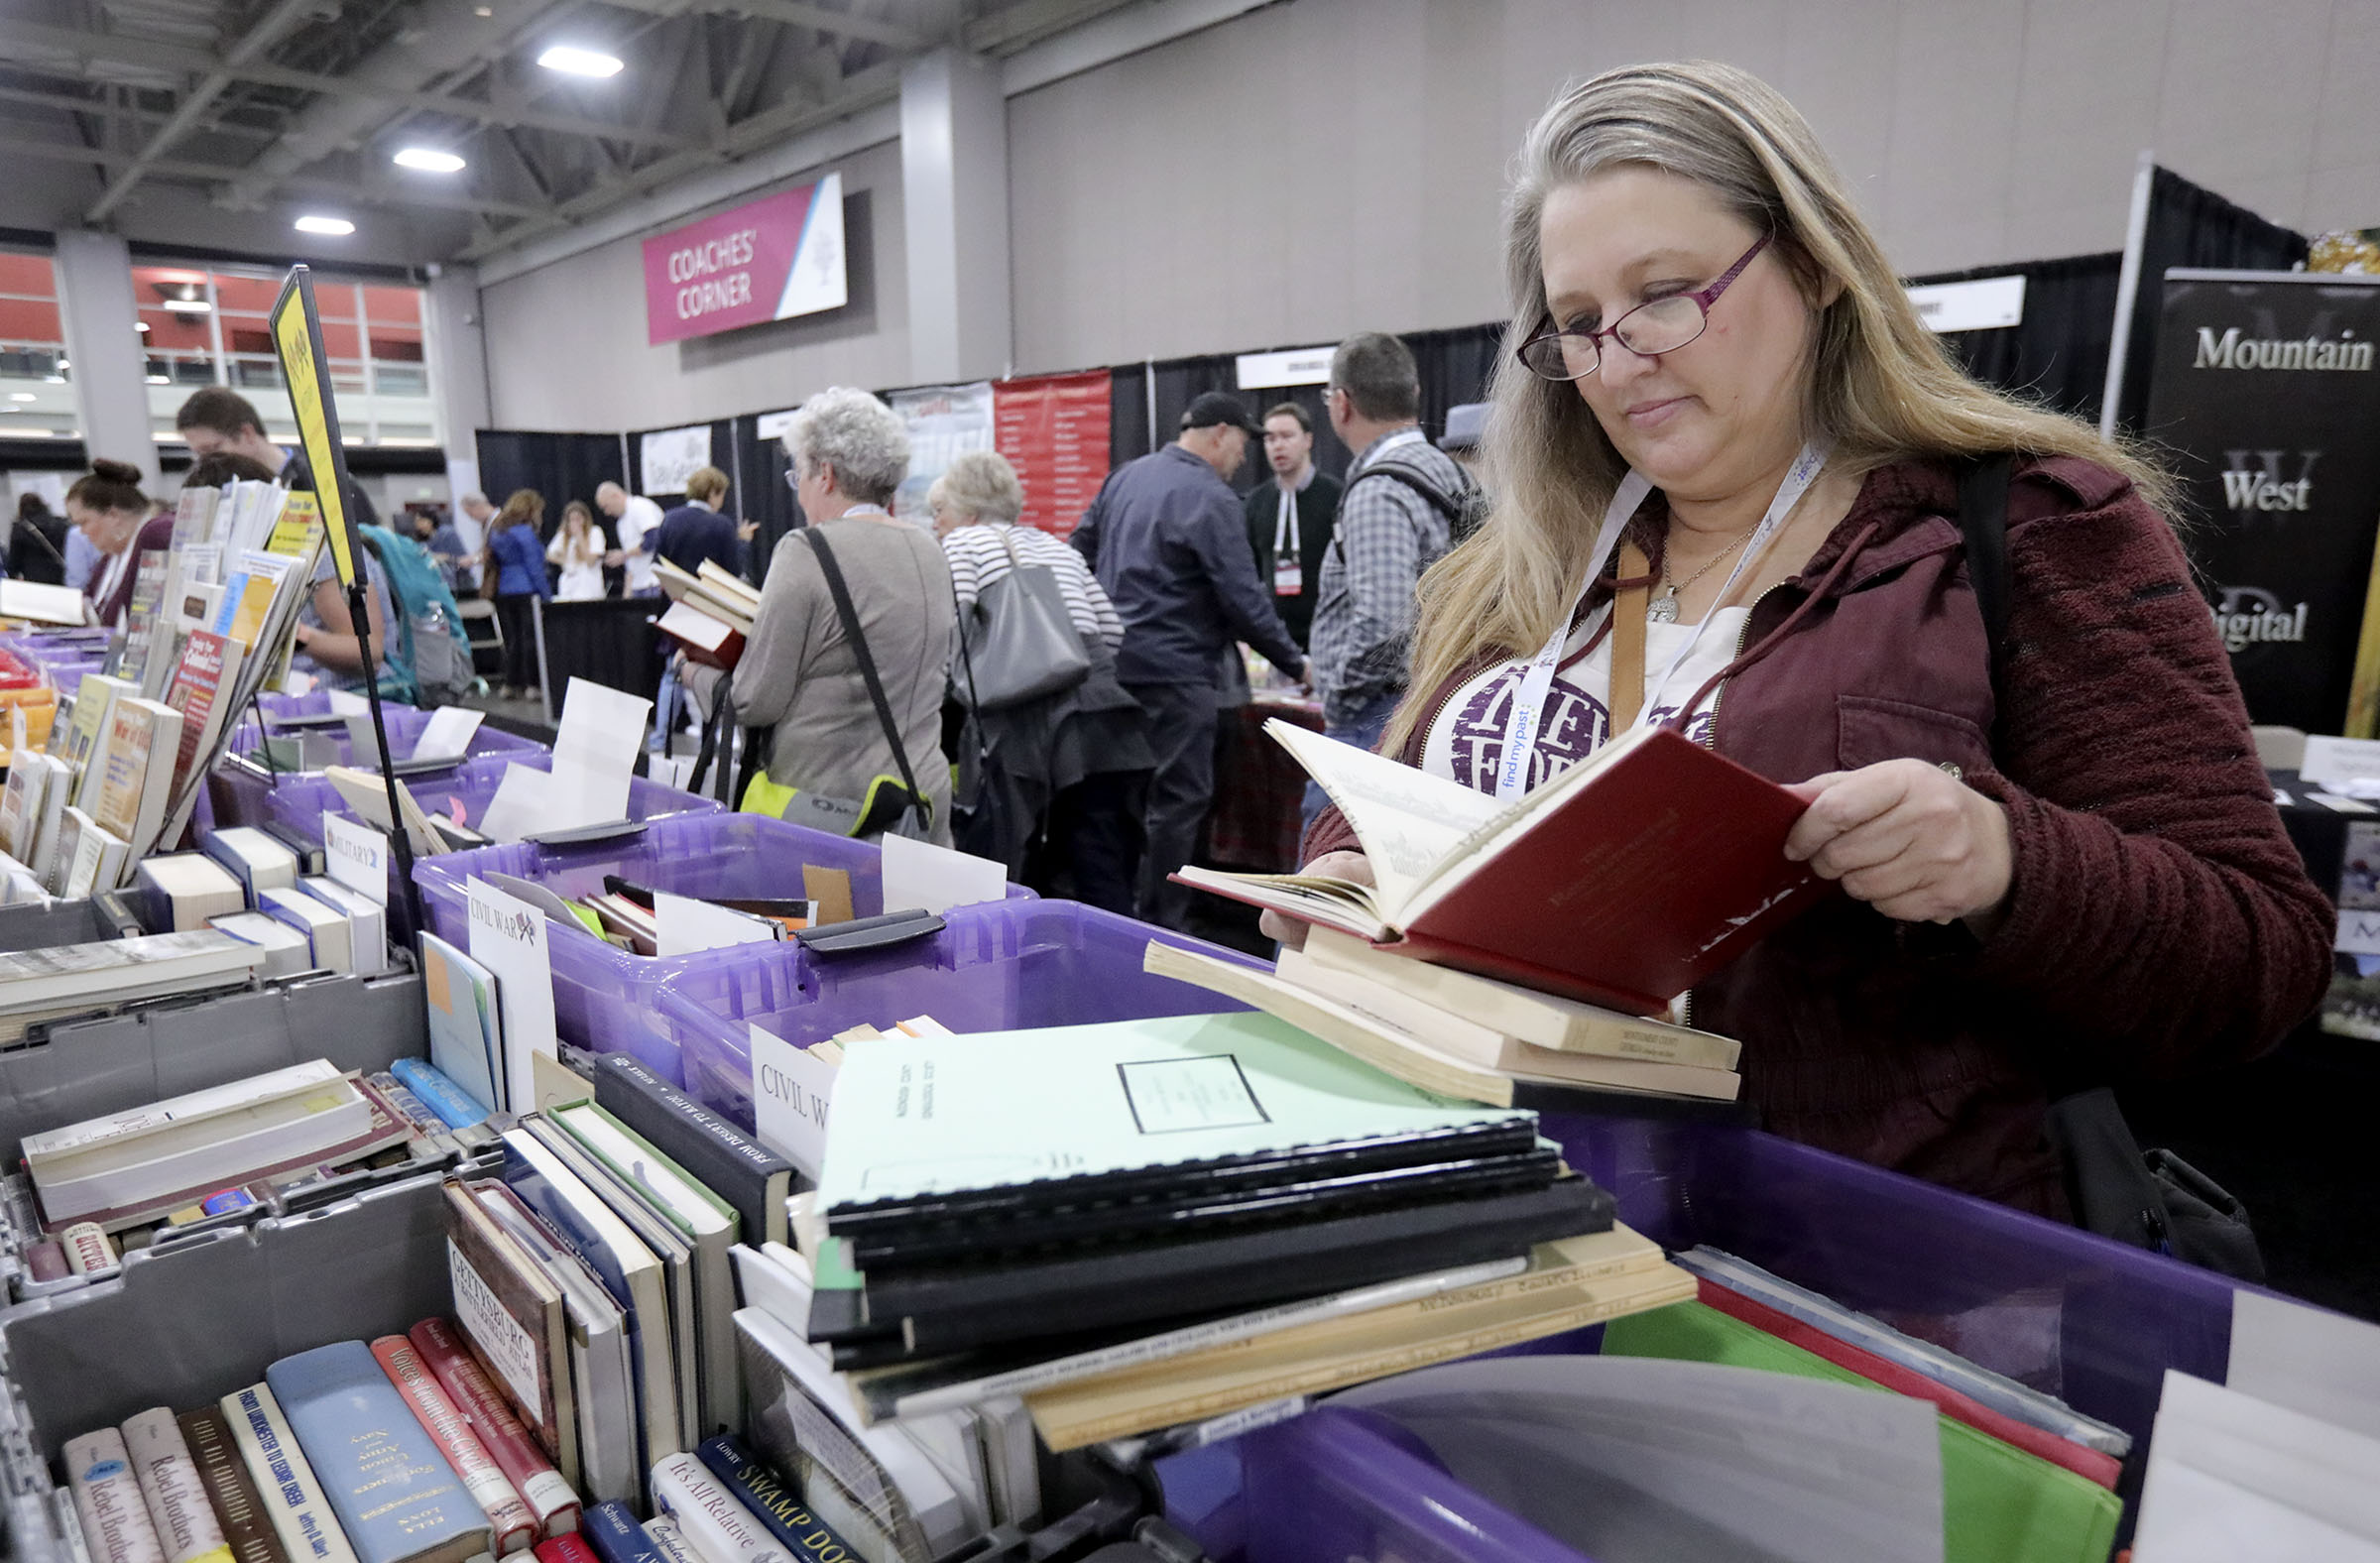 Valerie Luoma looks at historical books that are no longer in print for family history research during RootsTech at the Salt Palace Convention Center in Salt Lake City on Thursday, Feb. 28, 2019.